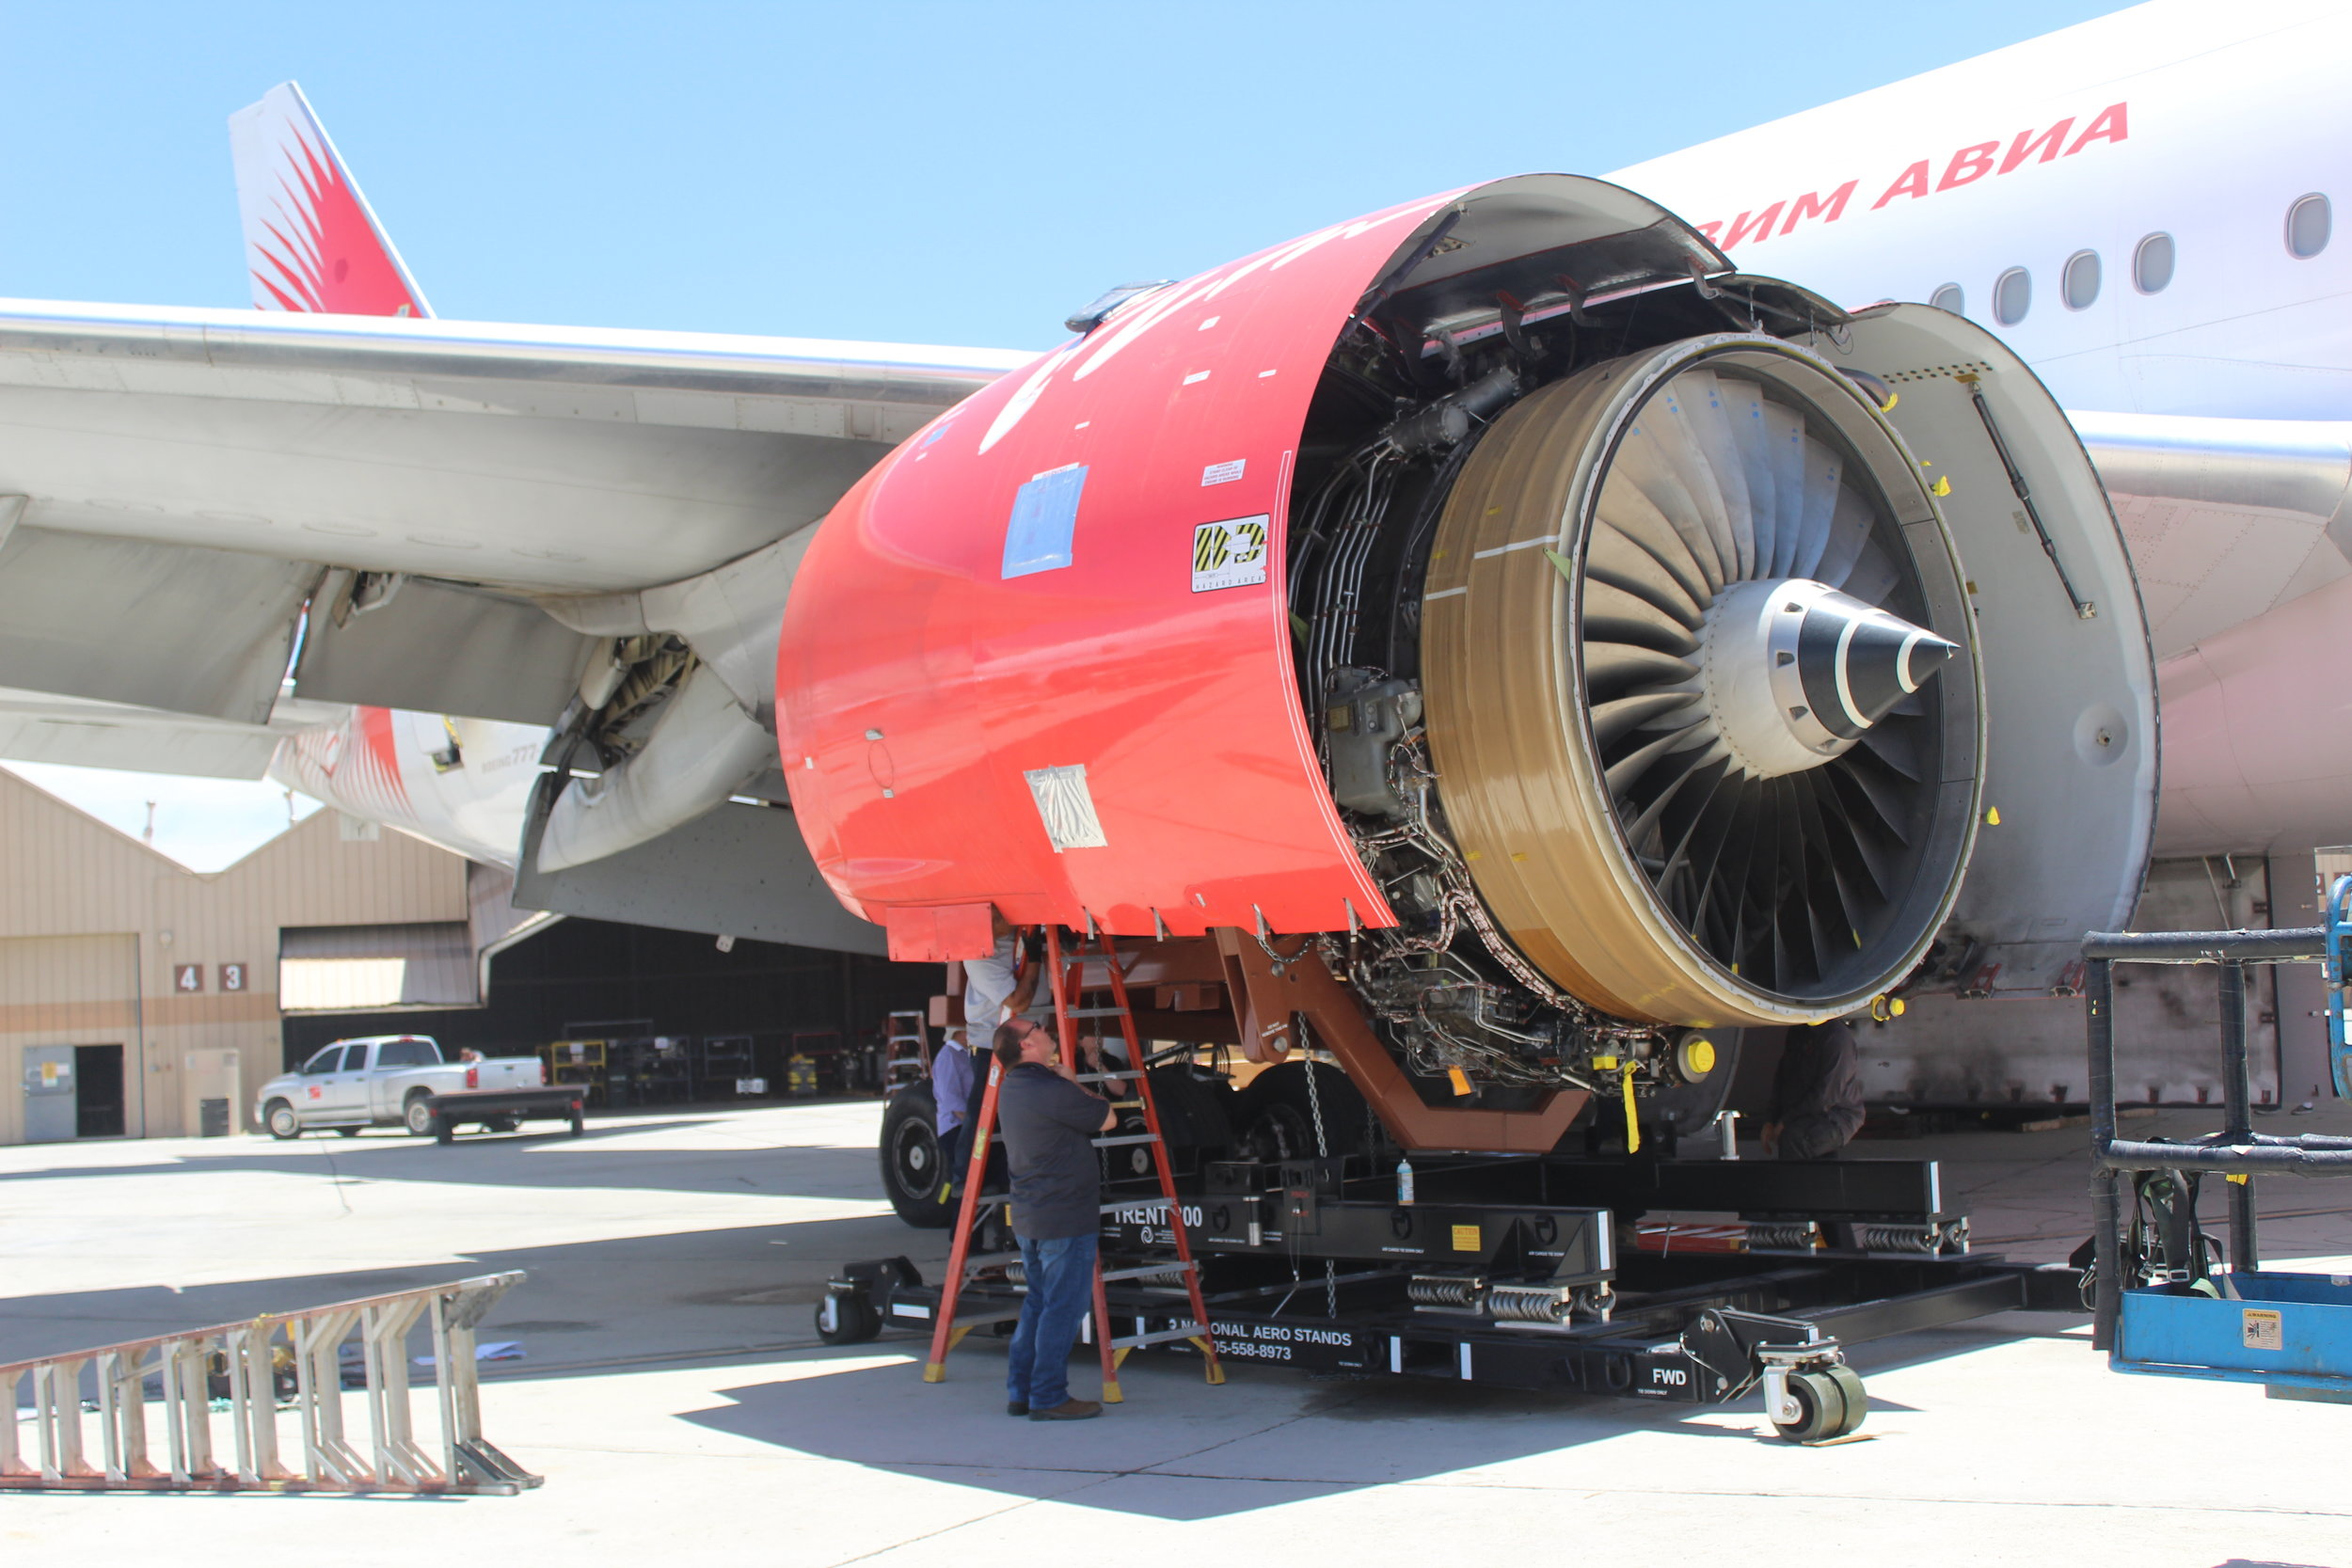 David Stringfellow, ComAv's Director of Maintenance, manages the engine removal on a newly acquired aircraft.